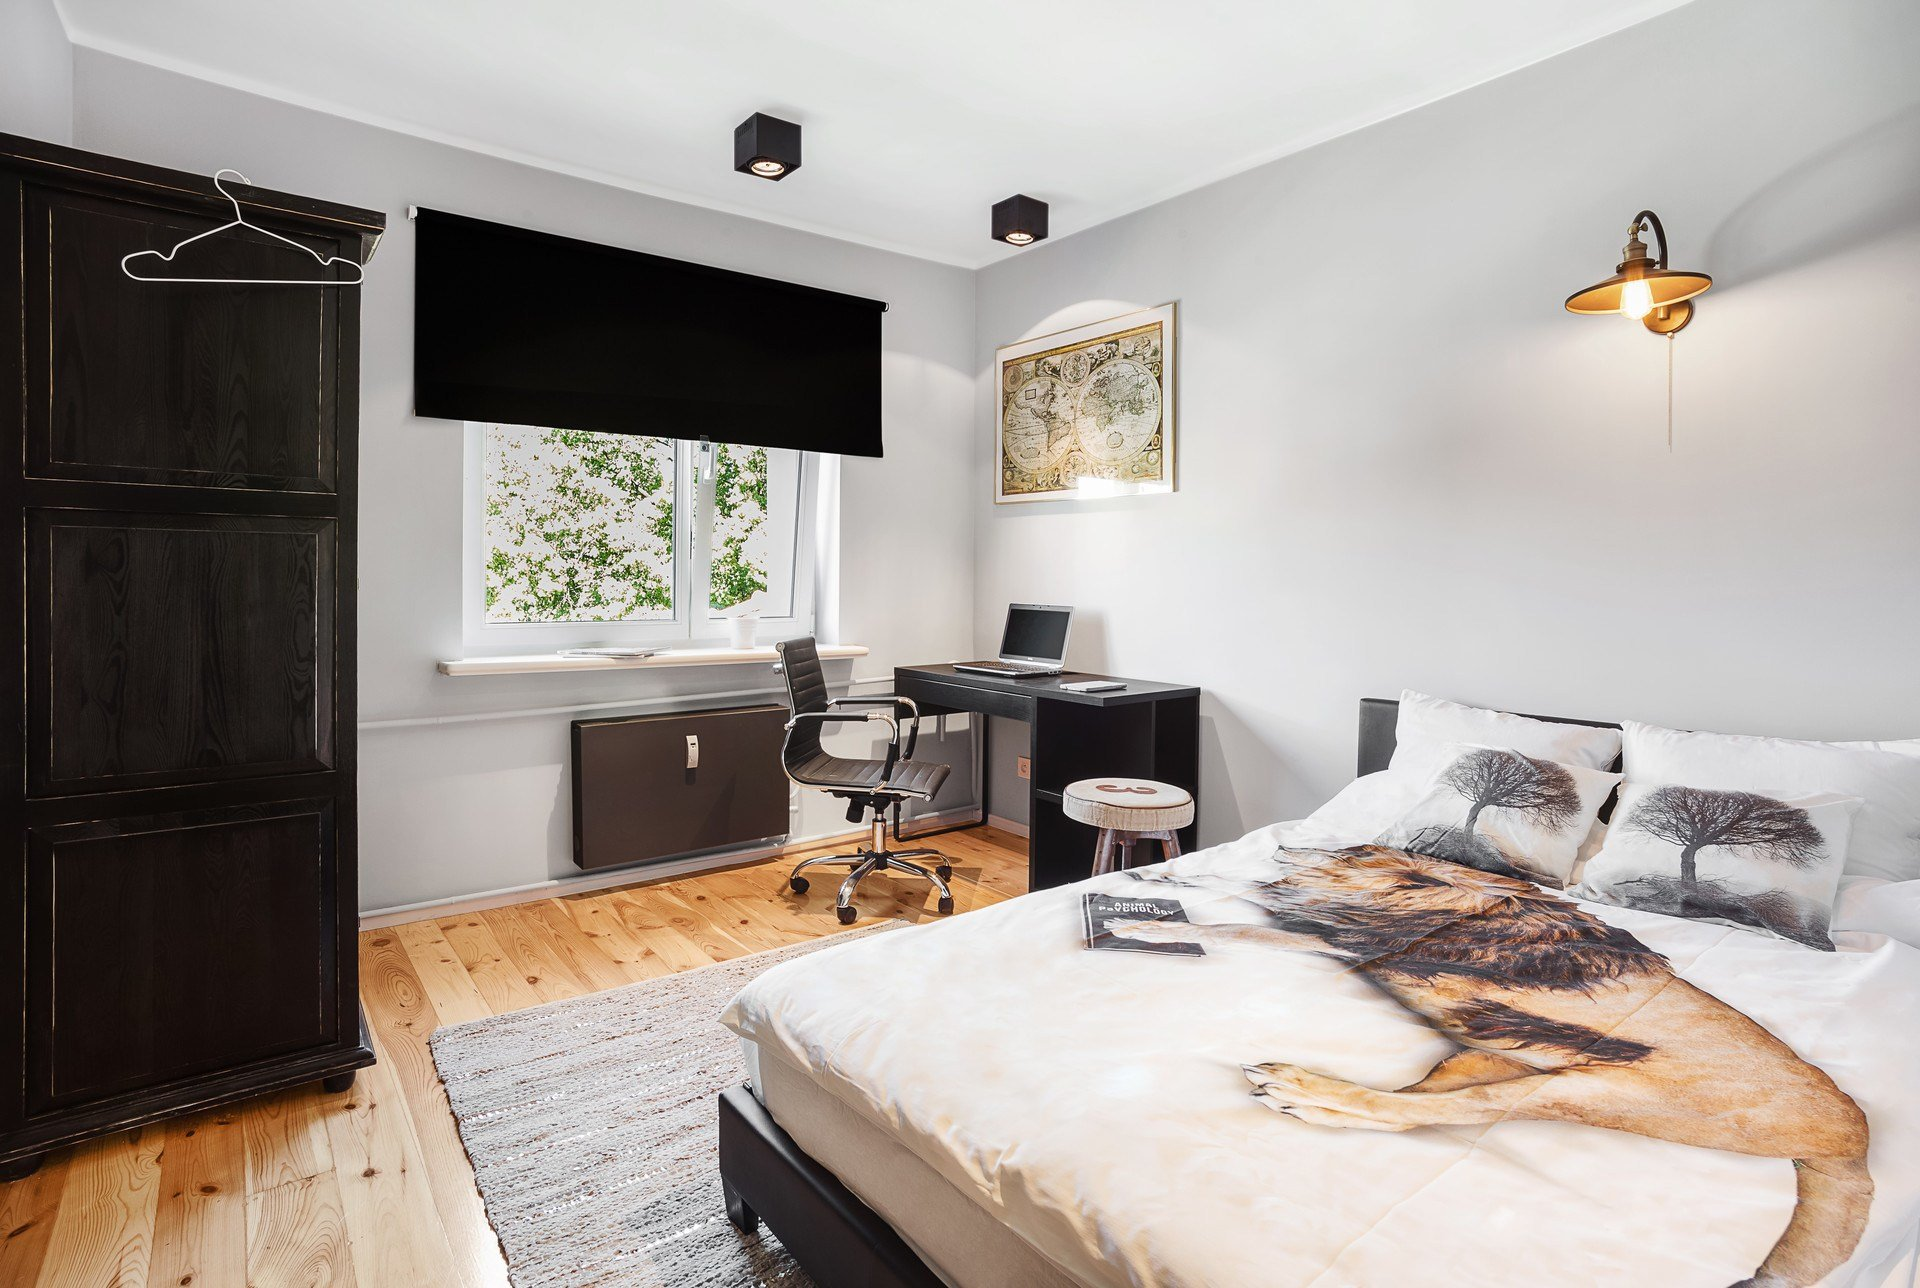 Best Single Bed Bedroom In A Large 4 Bedroom And 2 Floor Apartment In Gdansk Strzyża Wrzeszcz With Pictures